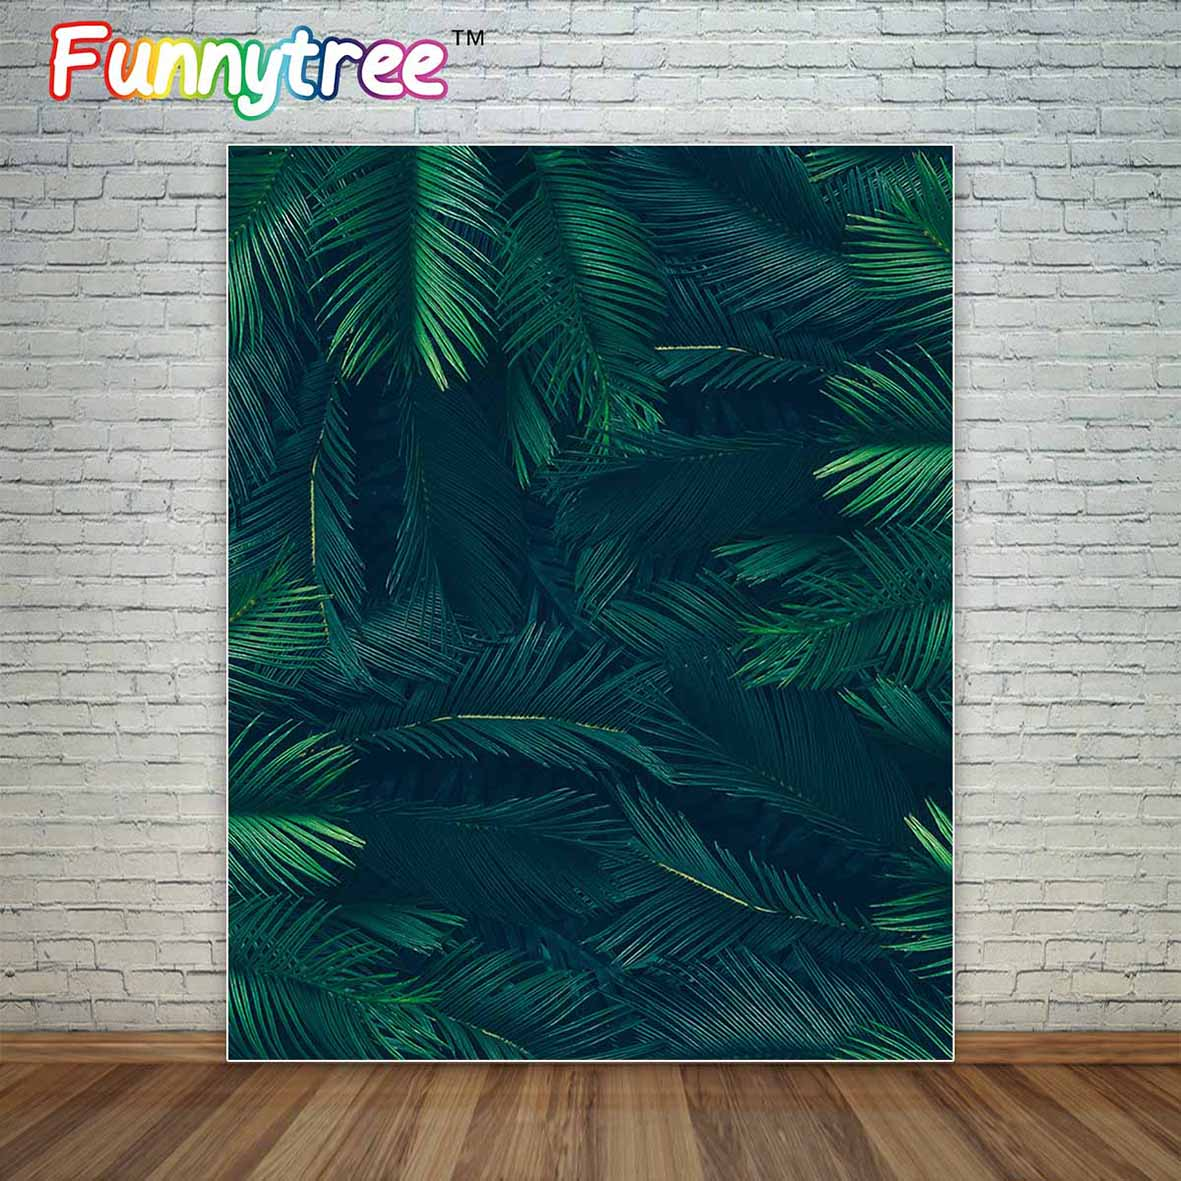 Jungle leaves tropical party theme birthday backdrop decoration photographic background photo backdrop for photography capisco super city photography backdrop theme building studio super hero photo background prop for photography party